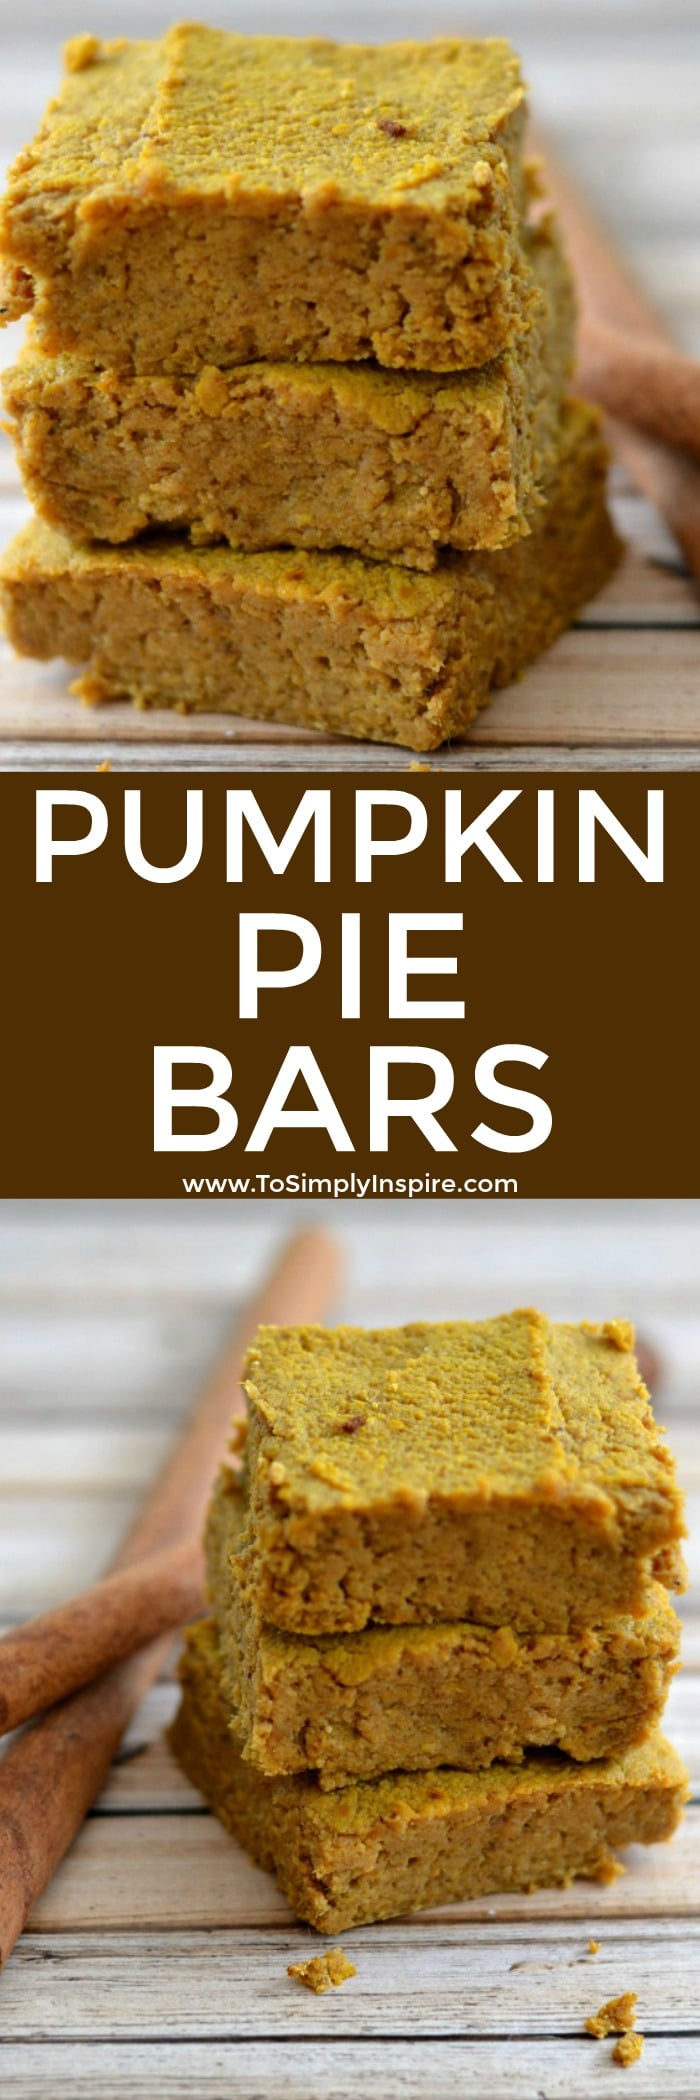 These Pumpkin Pie Bars are a wonderful, healthy dessert to make for any occasion. A grain-free version that is full of favorite pumpkin pie spices.